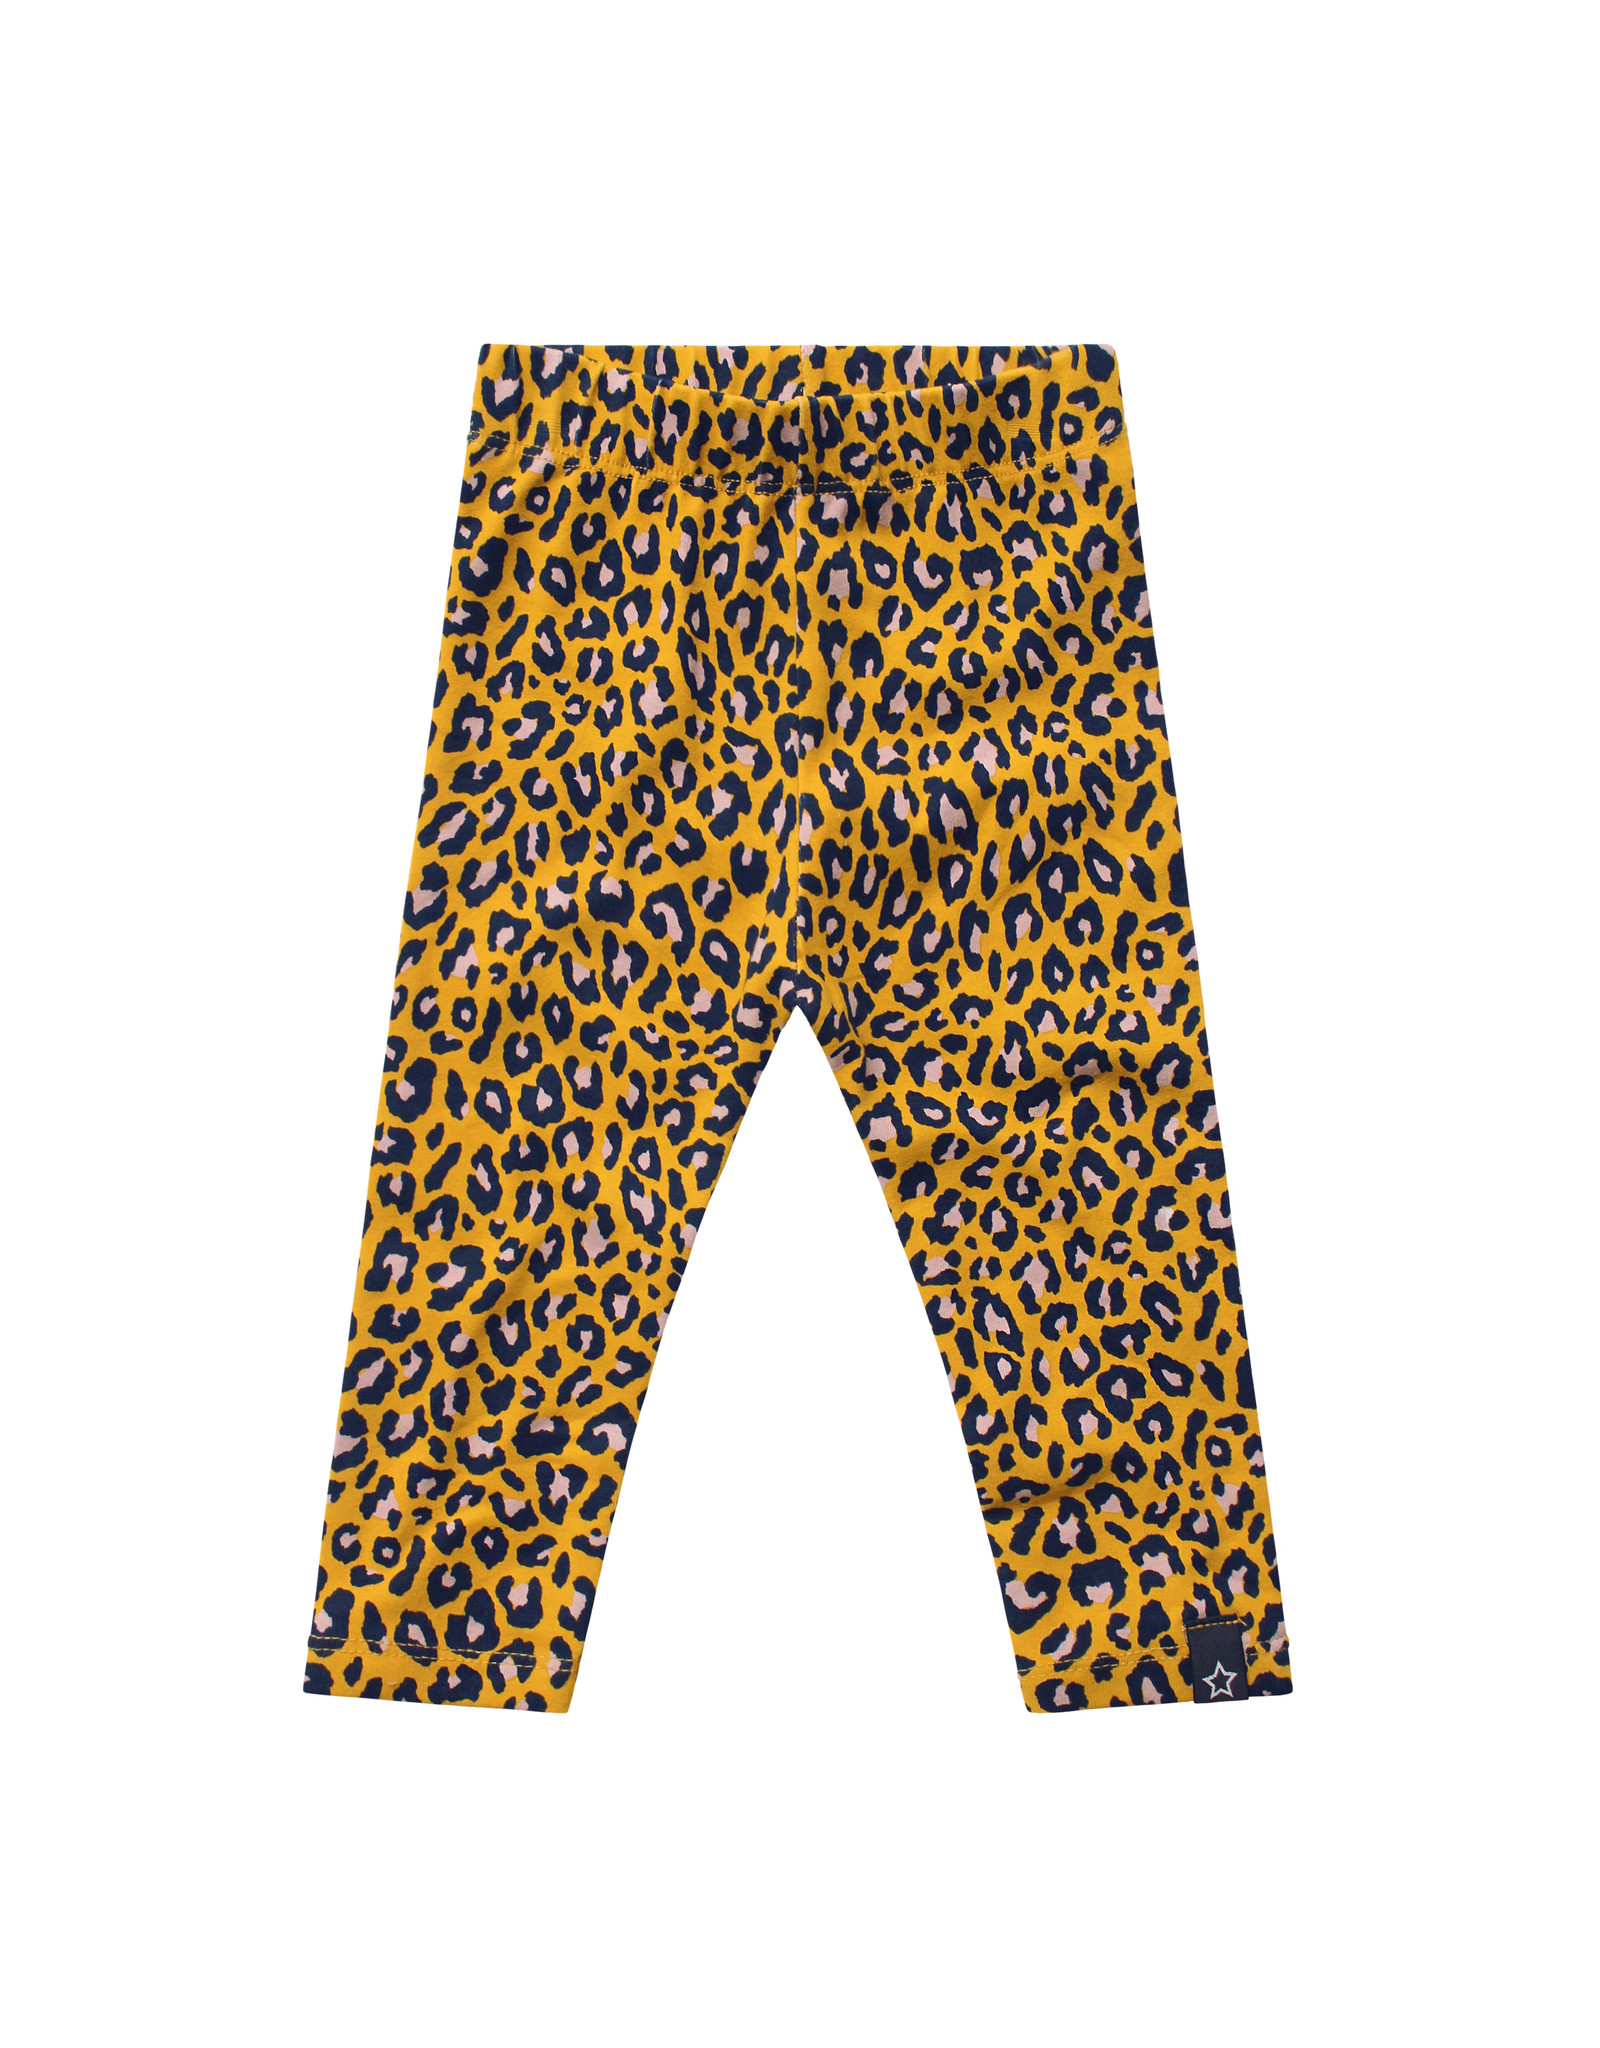 Your Wishes Leopard - Ochre | Legging